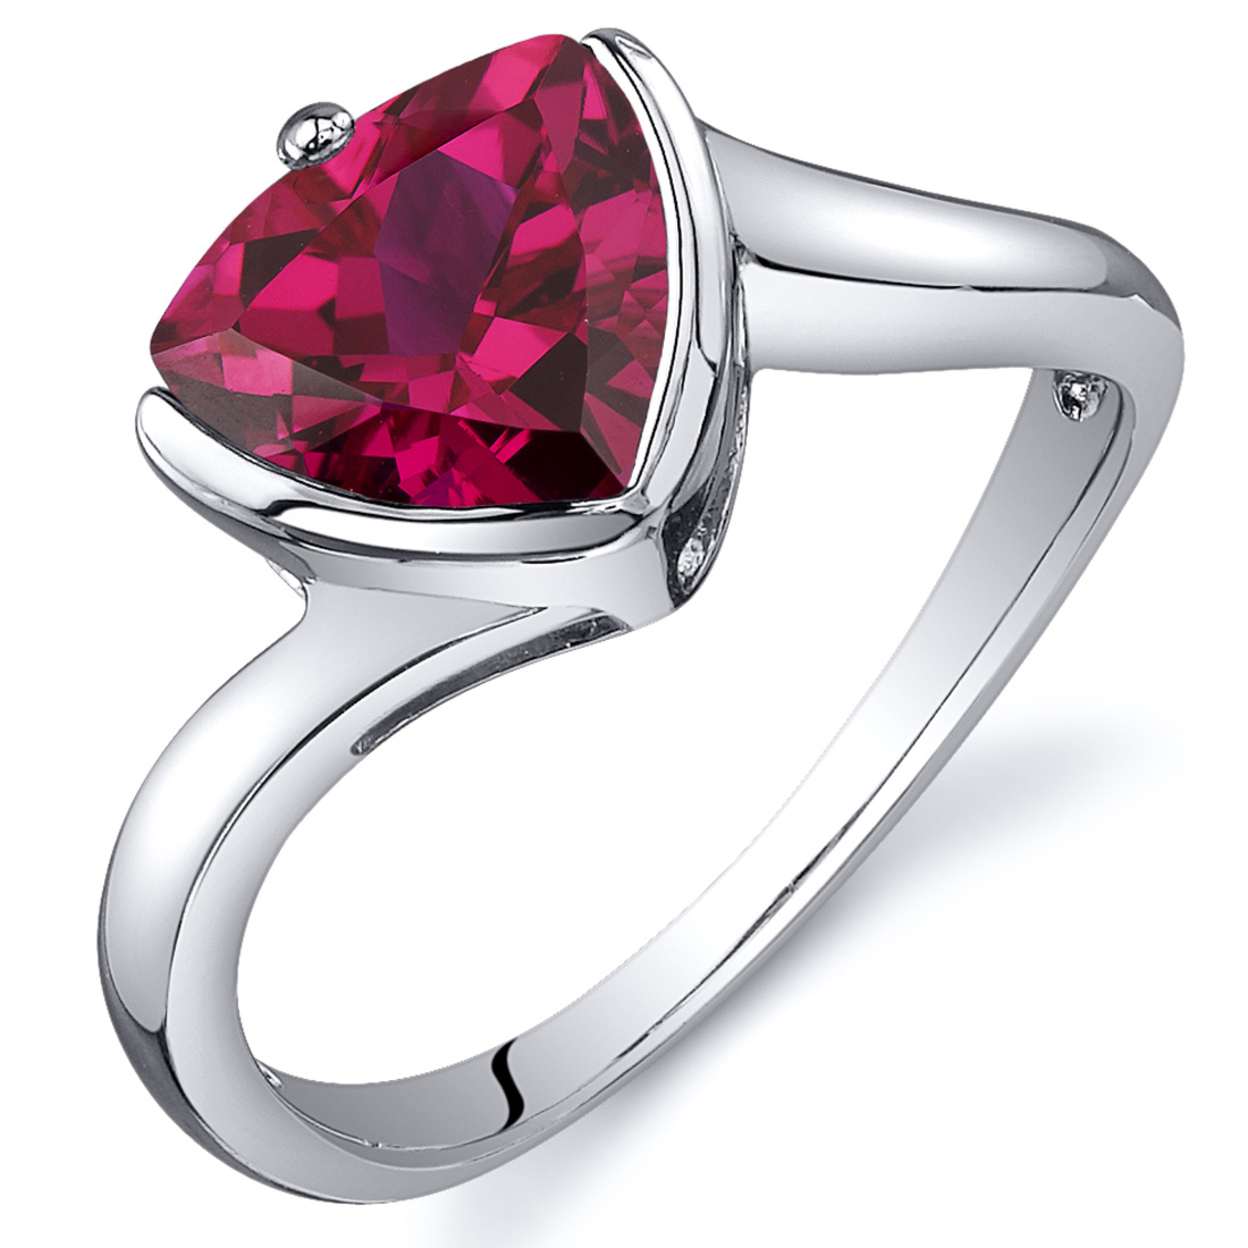 Oravo Rhodium-plated Sterling Silver Trillion Cut Ruby Ring 5